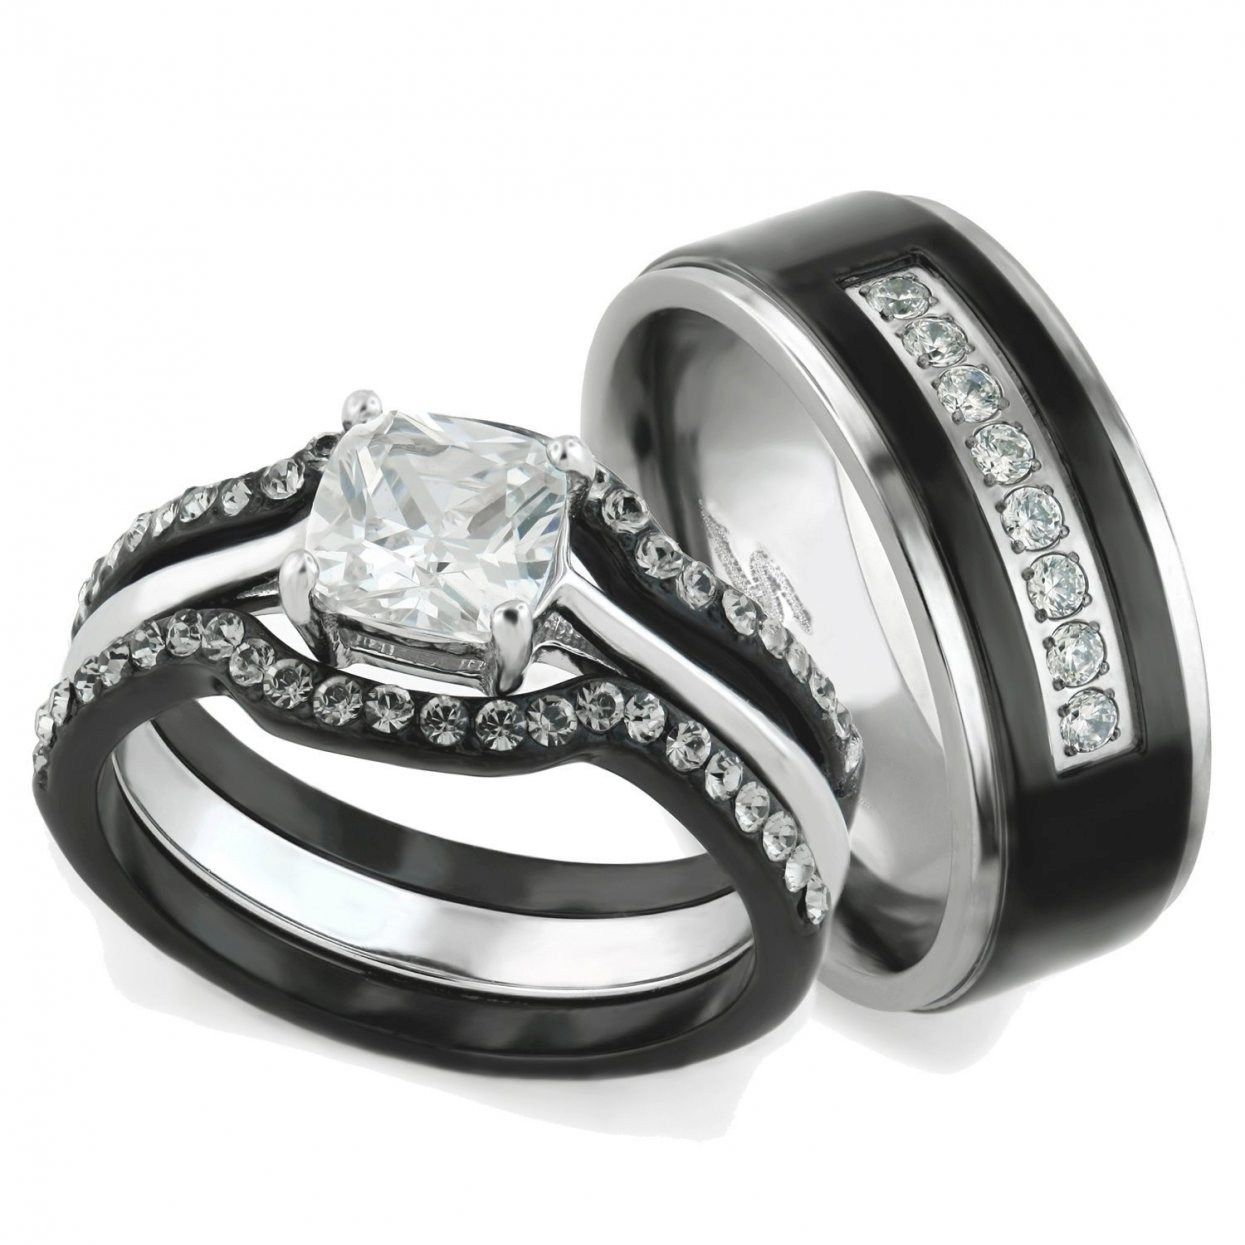 Zales Wedding Sets For Him And Her Mens diamond wedding